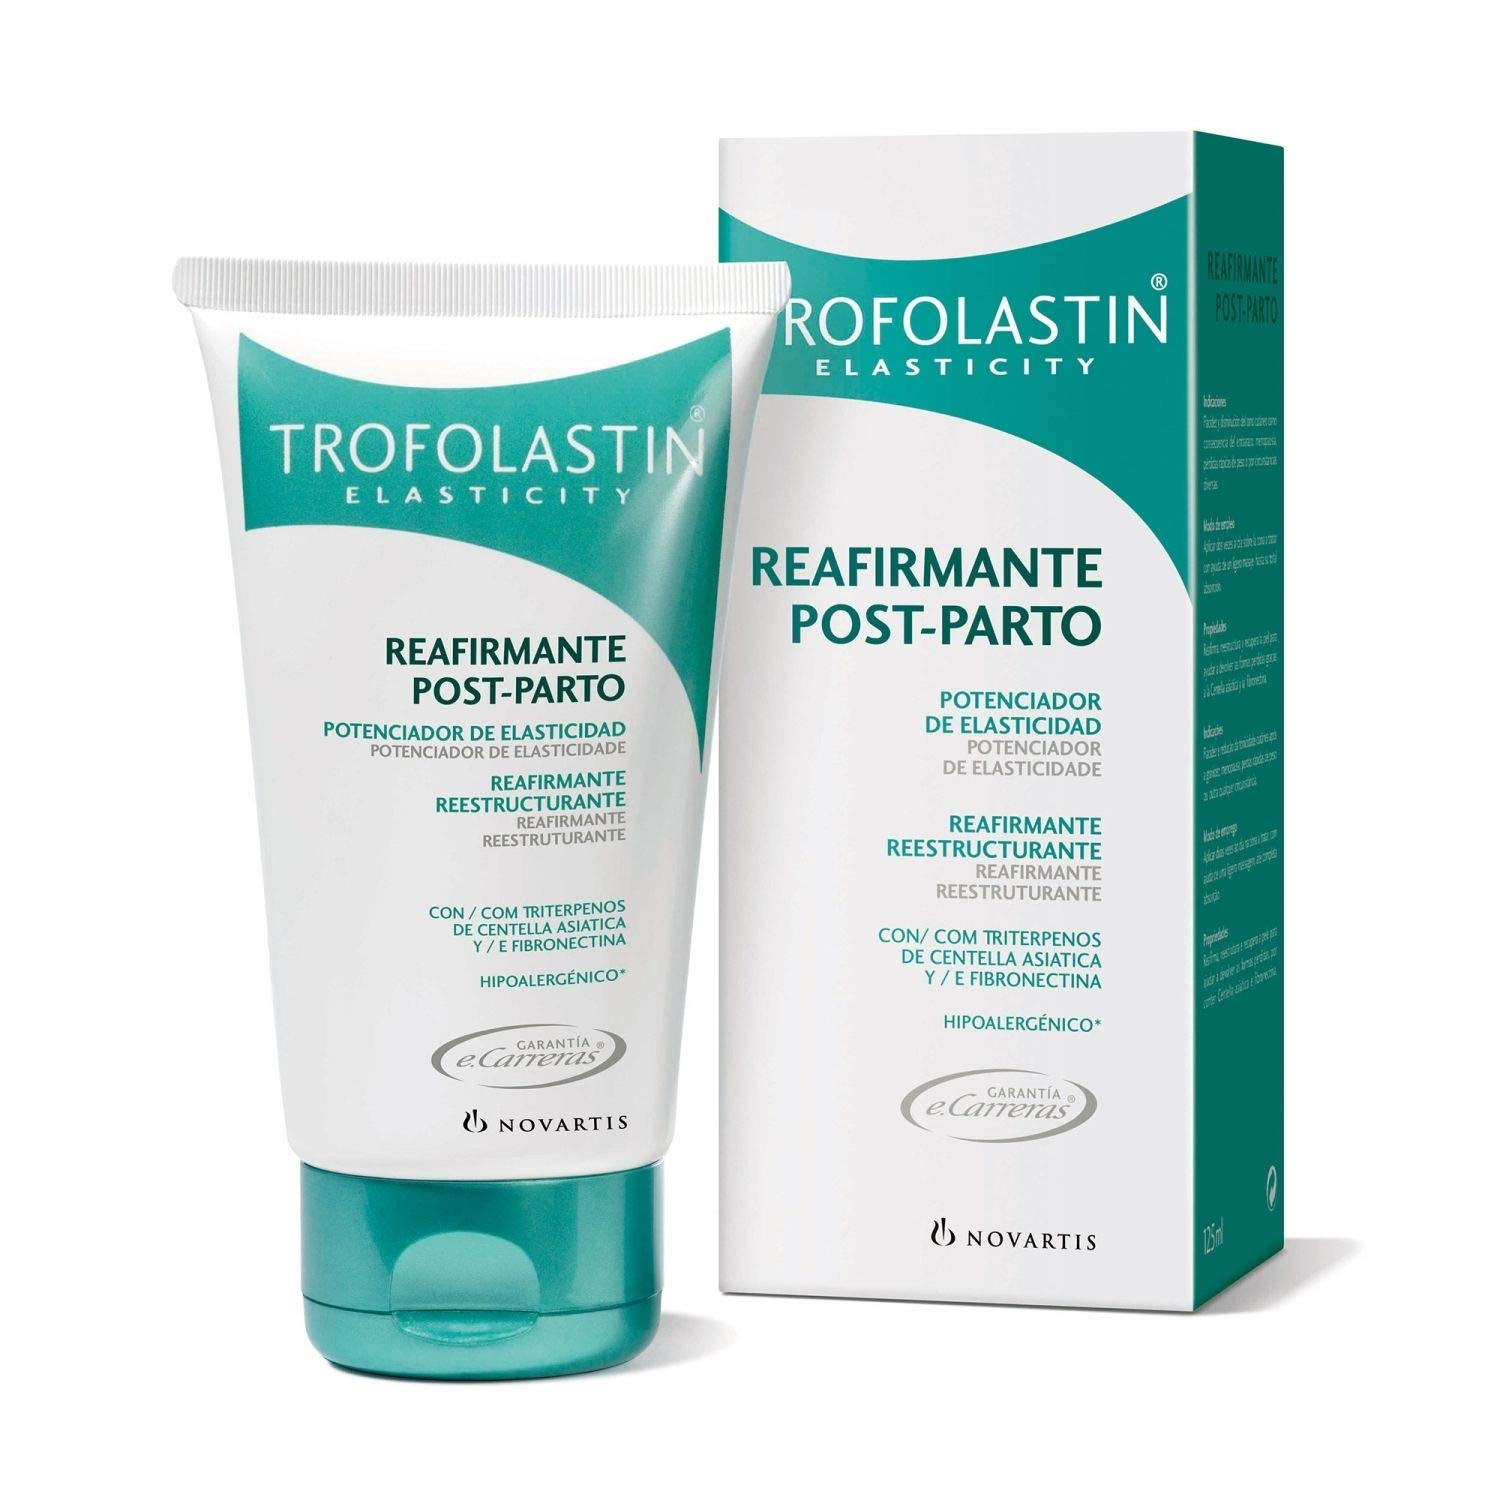 Amazon.com : Novartis Trofolastín Post-Partum Firming Cream 200Ml - Firming Anti-Stretch Marks Cream That Will Improve The Appearance Of Your Skin : Beauty